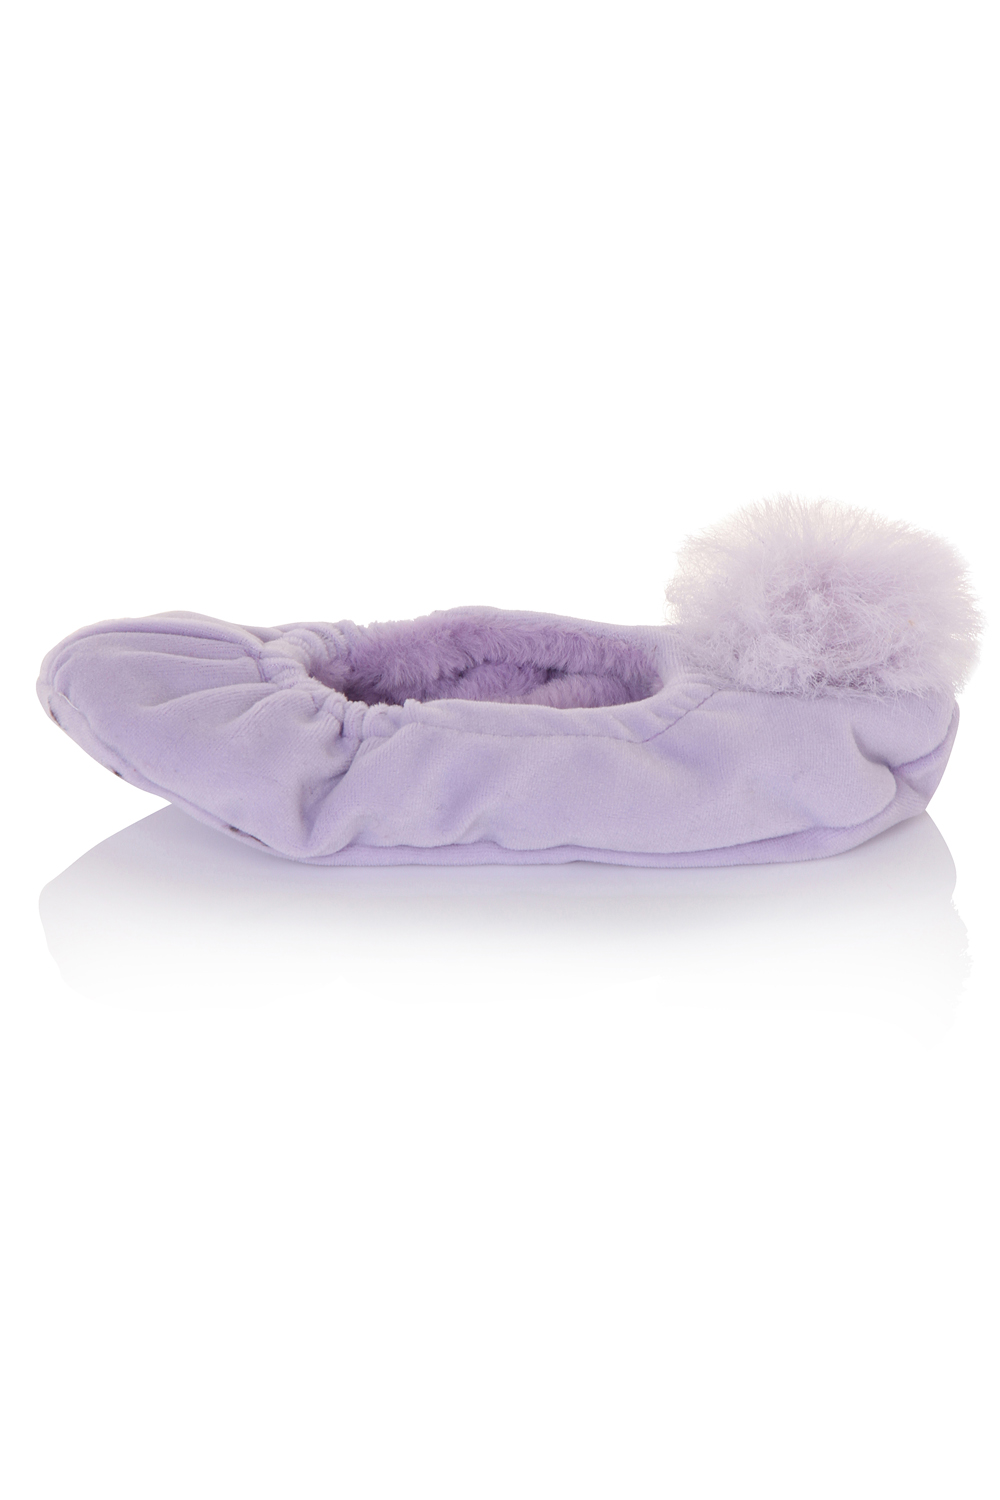 Loungeable-Womens-Pom-Slipper-Sock-Nightwear-New-Ladies-Elasticated-Footwear miniature 3